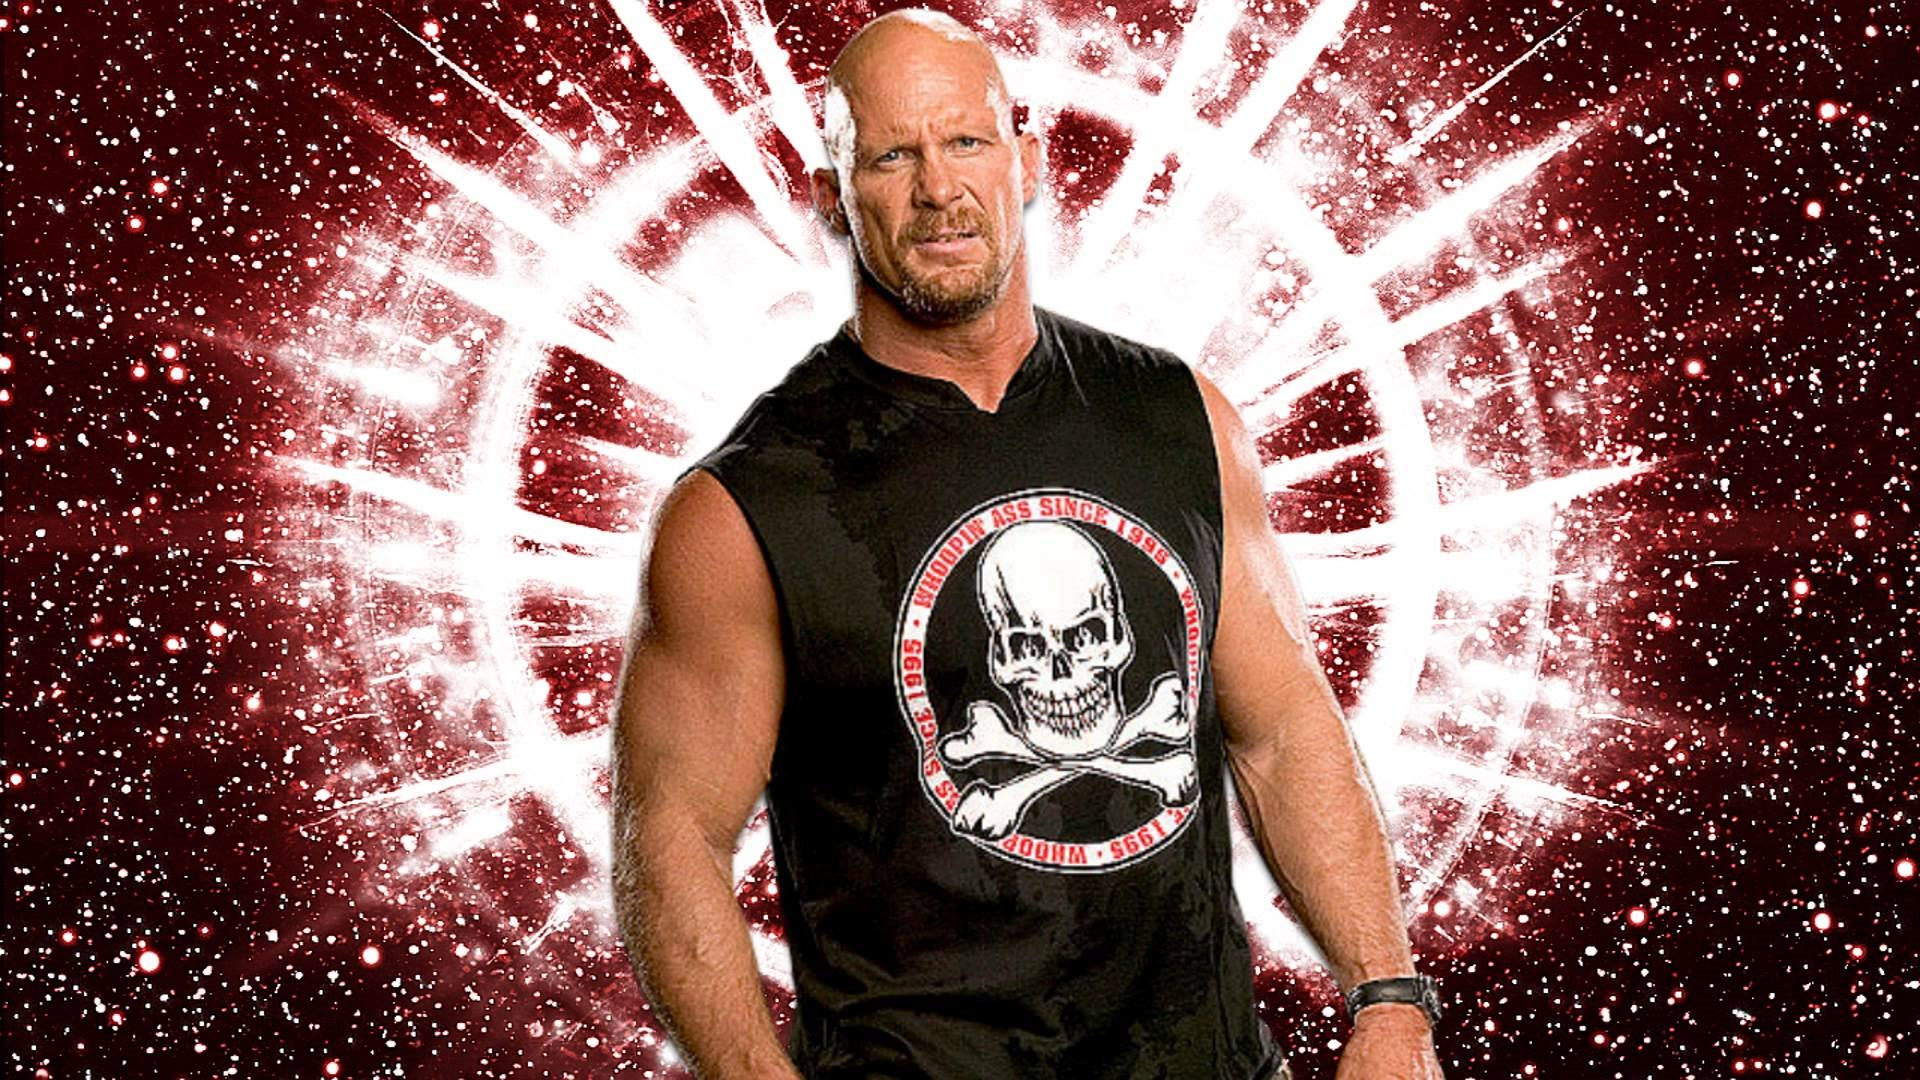 stone cold wallpaper wwe freee desktop